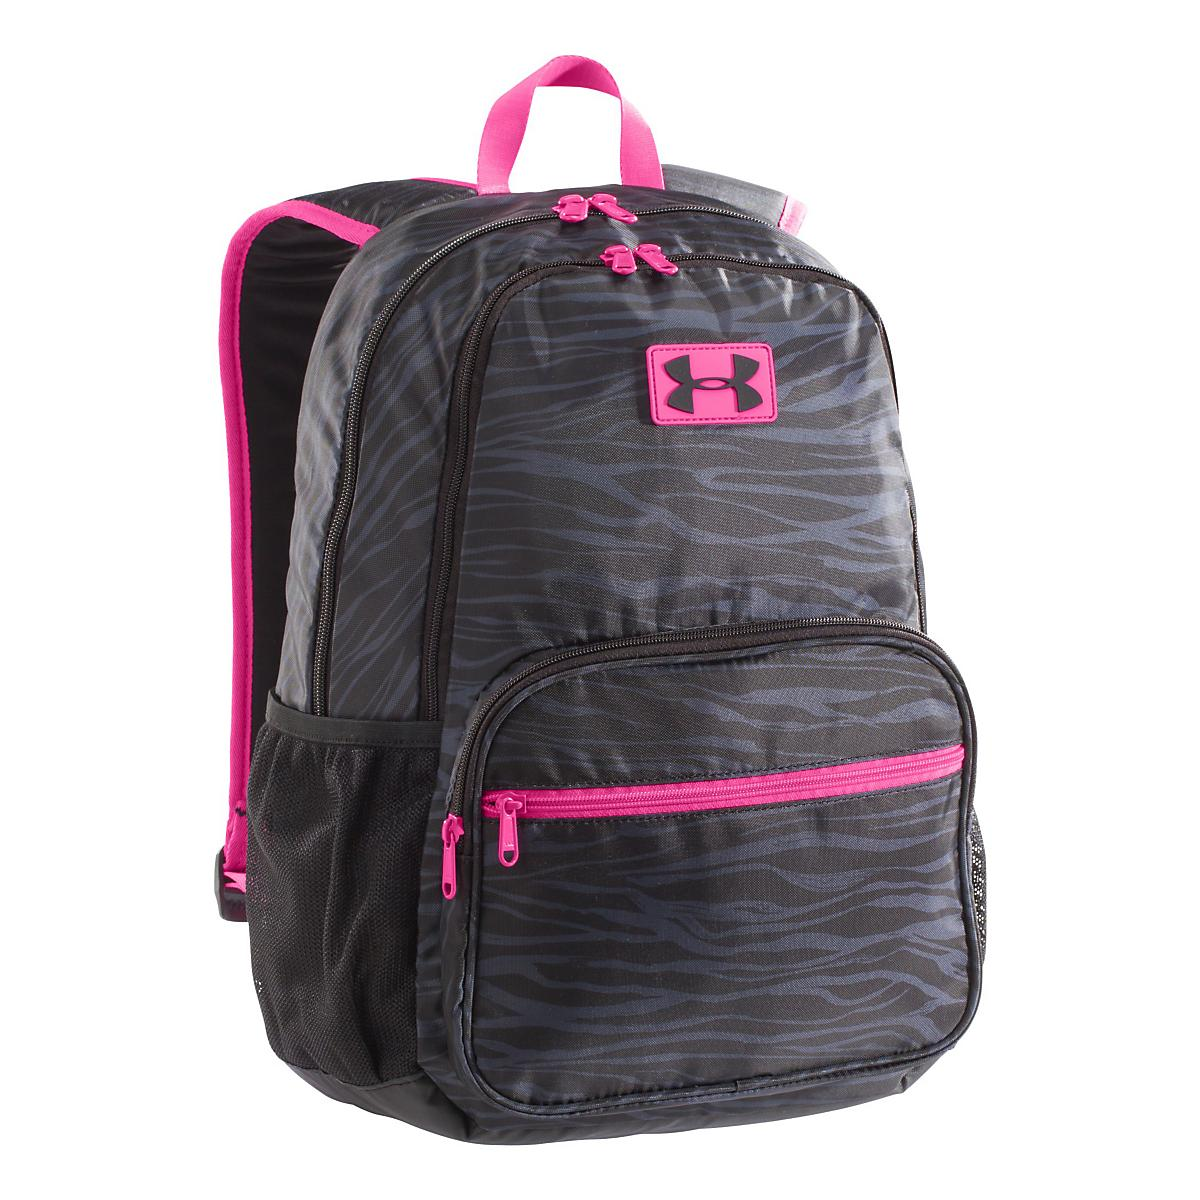 Free shipping BOTH ways on Under Armour, Backpacks, from our vast selection of styles. Fast delivery, and 24/7/ real-person service with a smile. Click or call